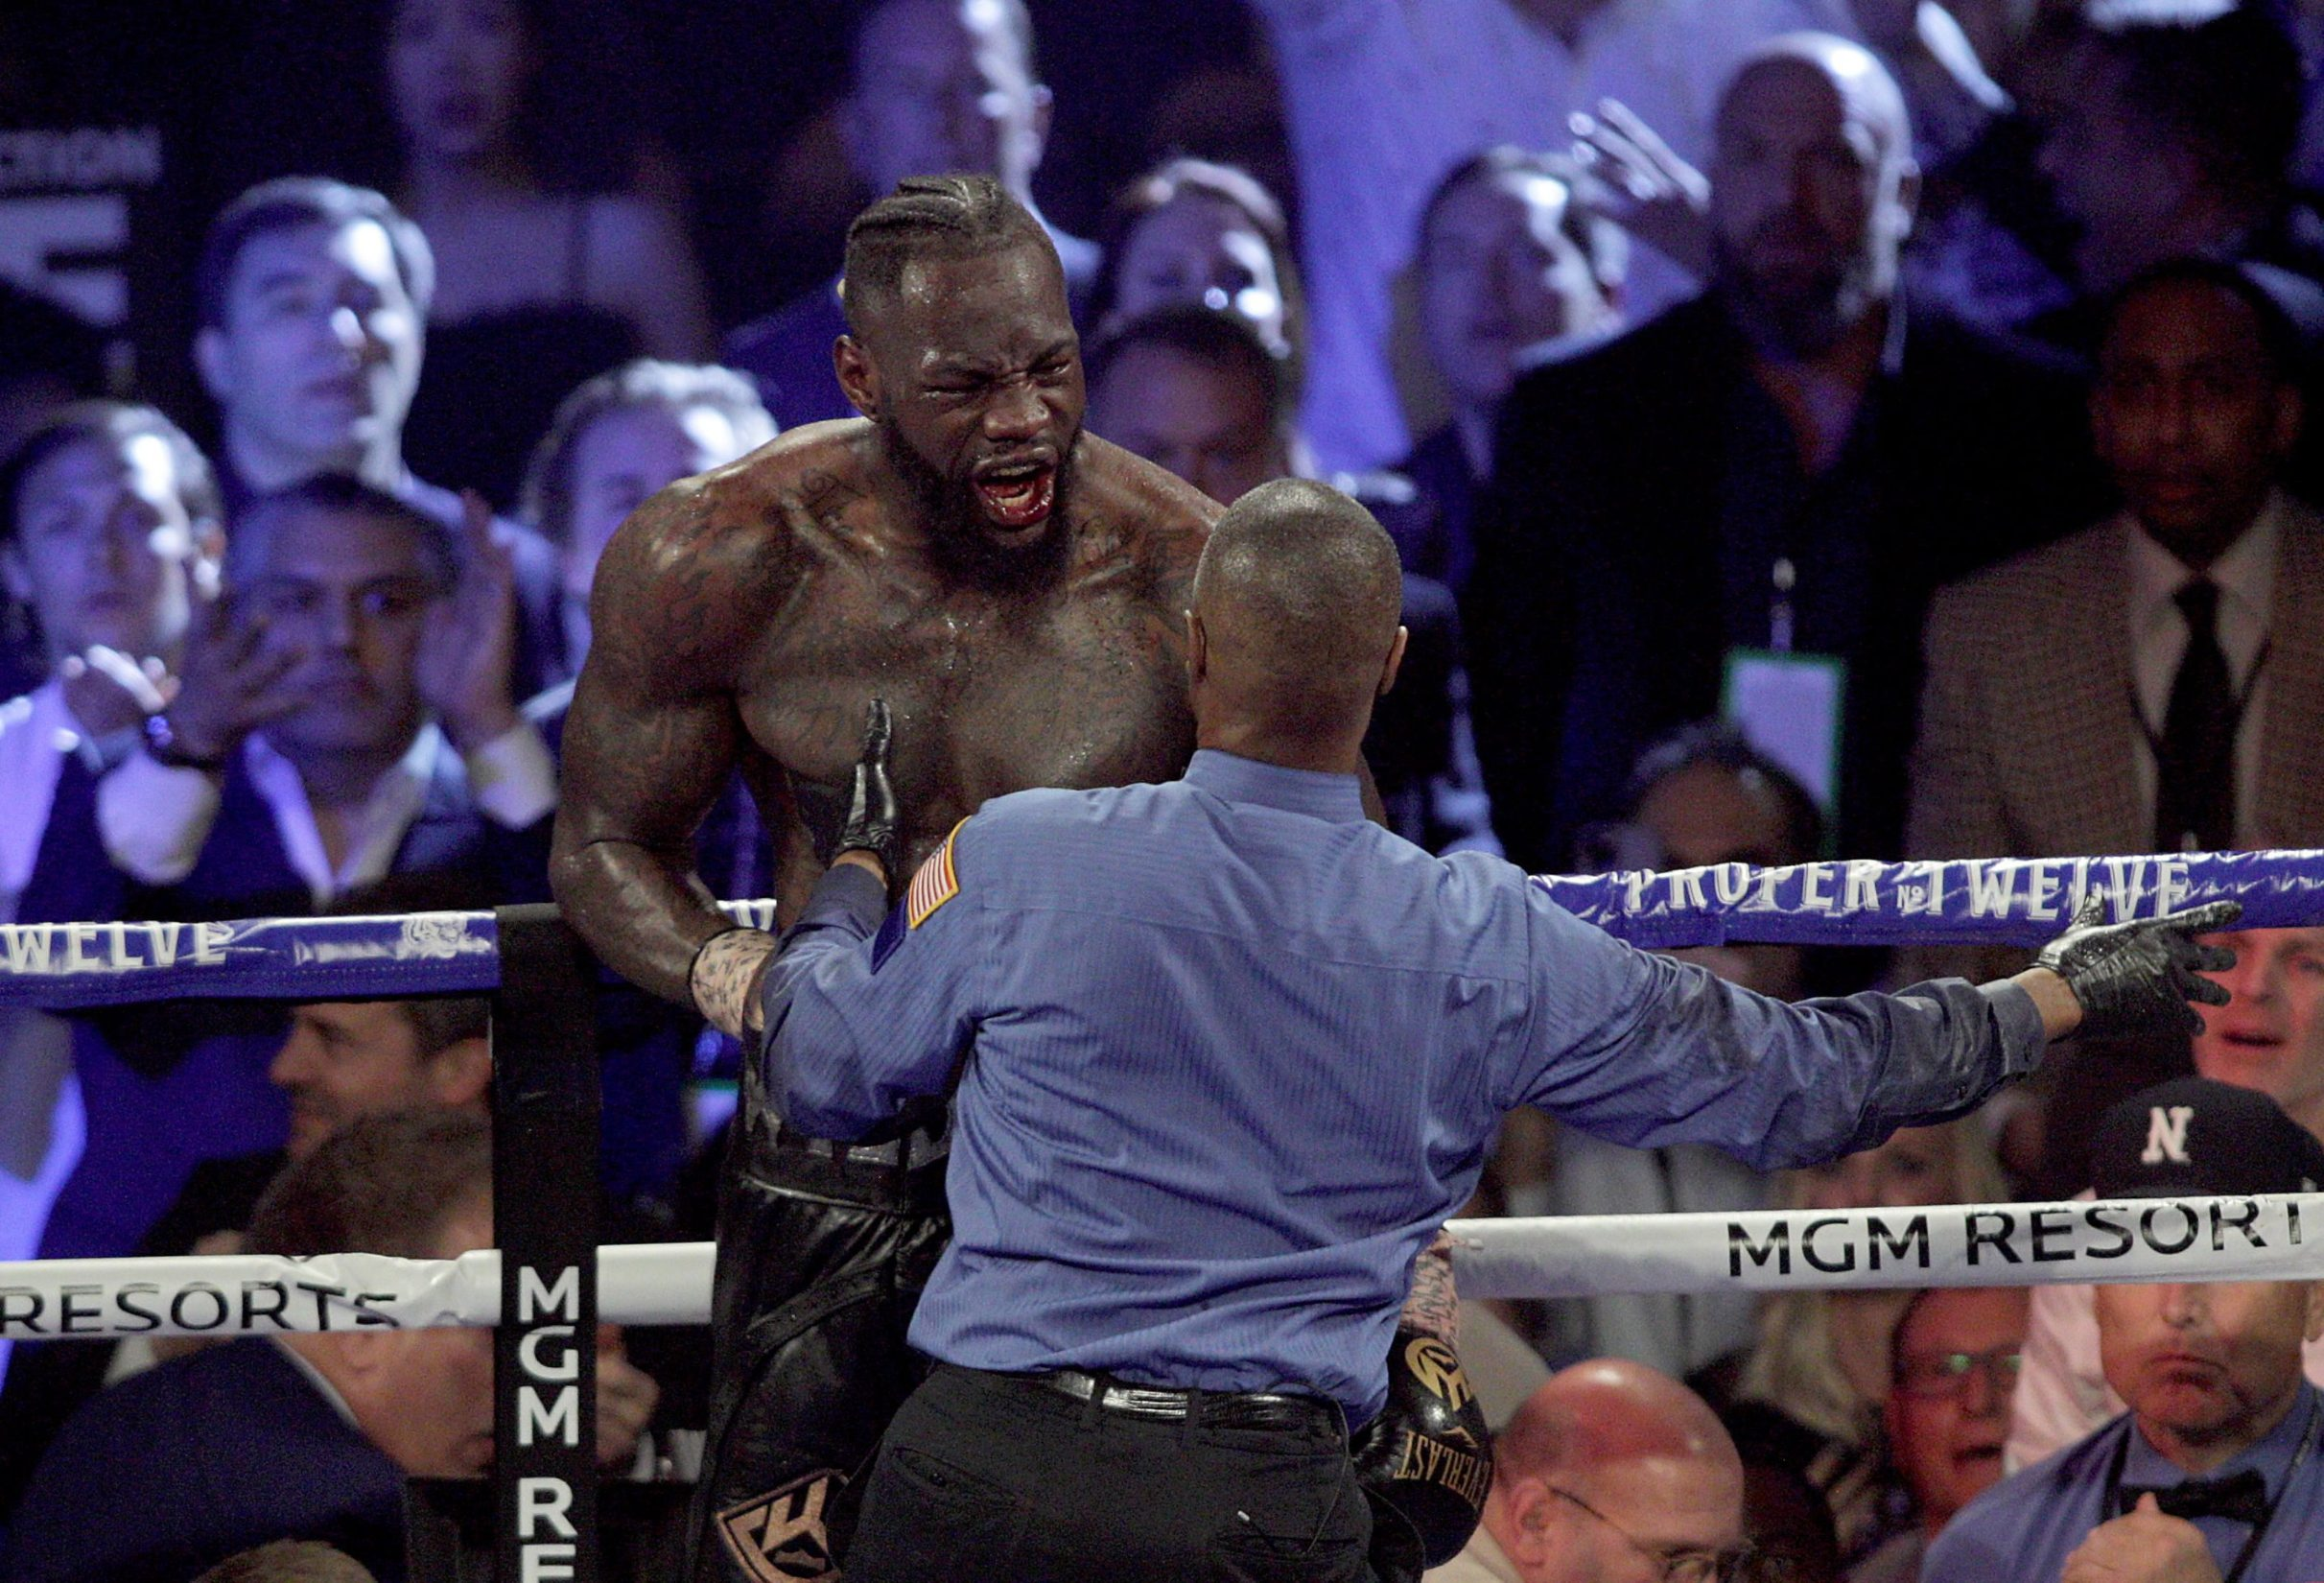 US boxer Deontay Wilder reacts during his World Boxing Council (WBC) Heavyweight Championship Title boxing match against British boxer Tyson Fury at the MGM Grand Garden Arena in Las Vegas on February 22, 2020. (Photo by John Gurzinski / AFP)